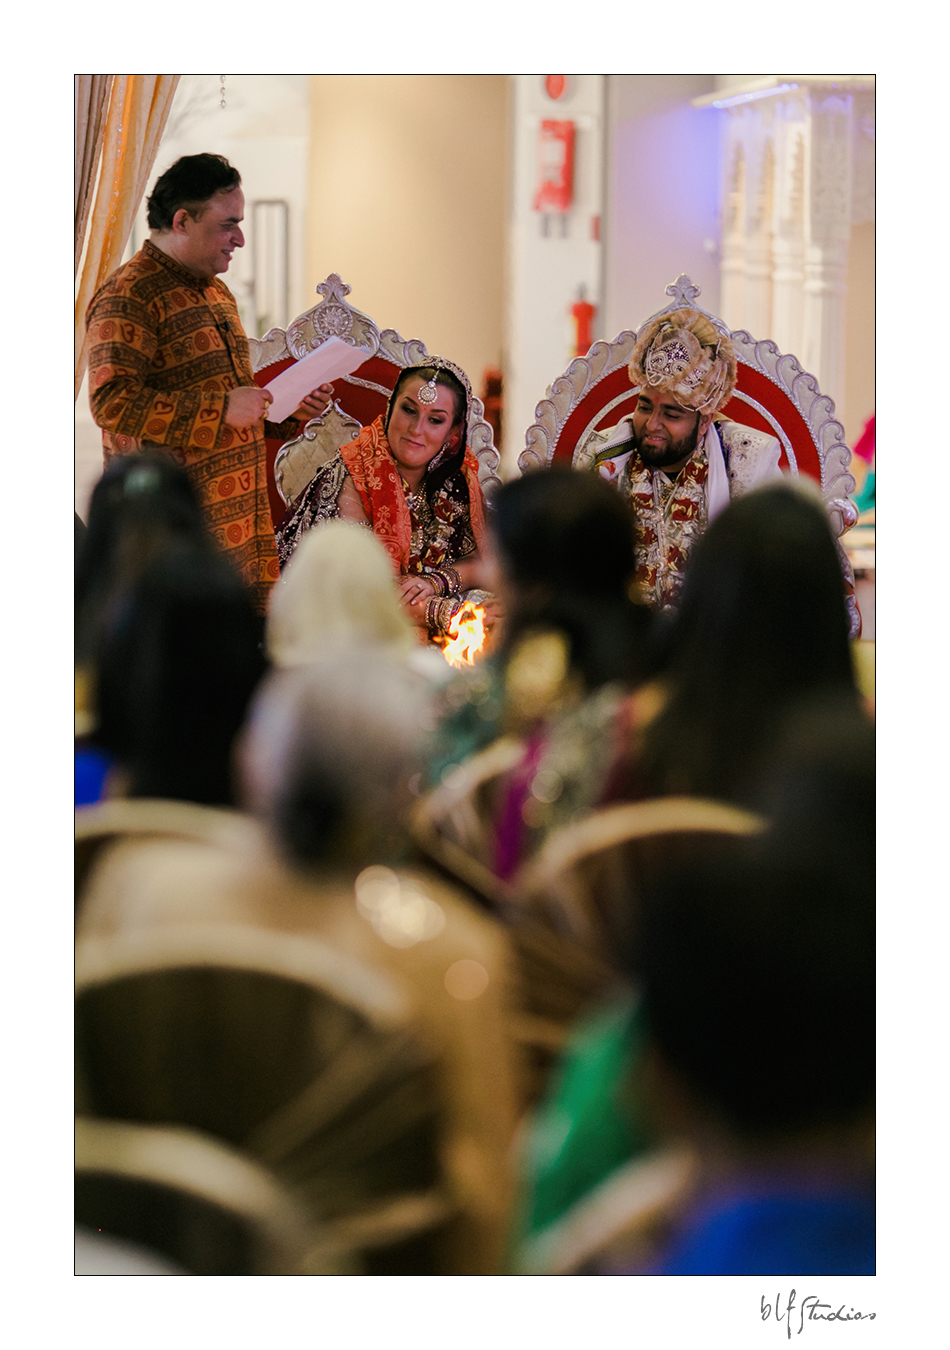 0028blfstudios-winnipeg-hindu-wedding-photos.jpg